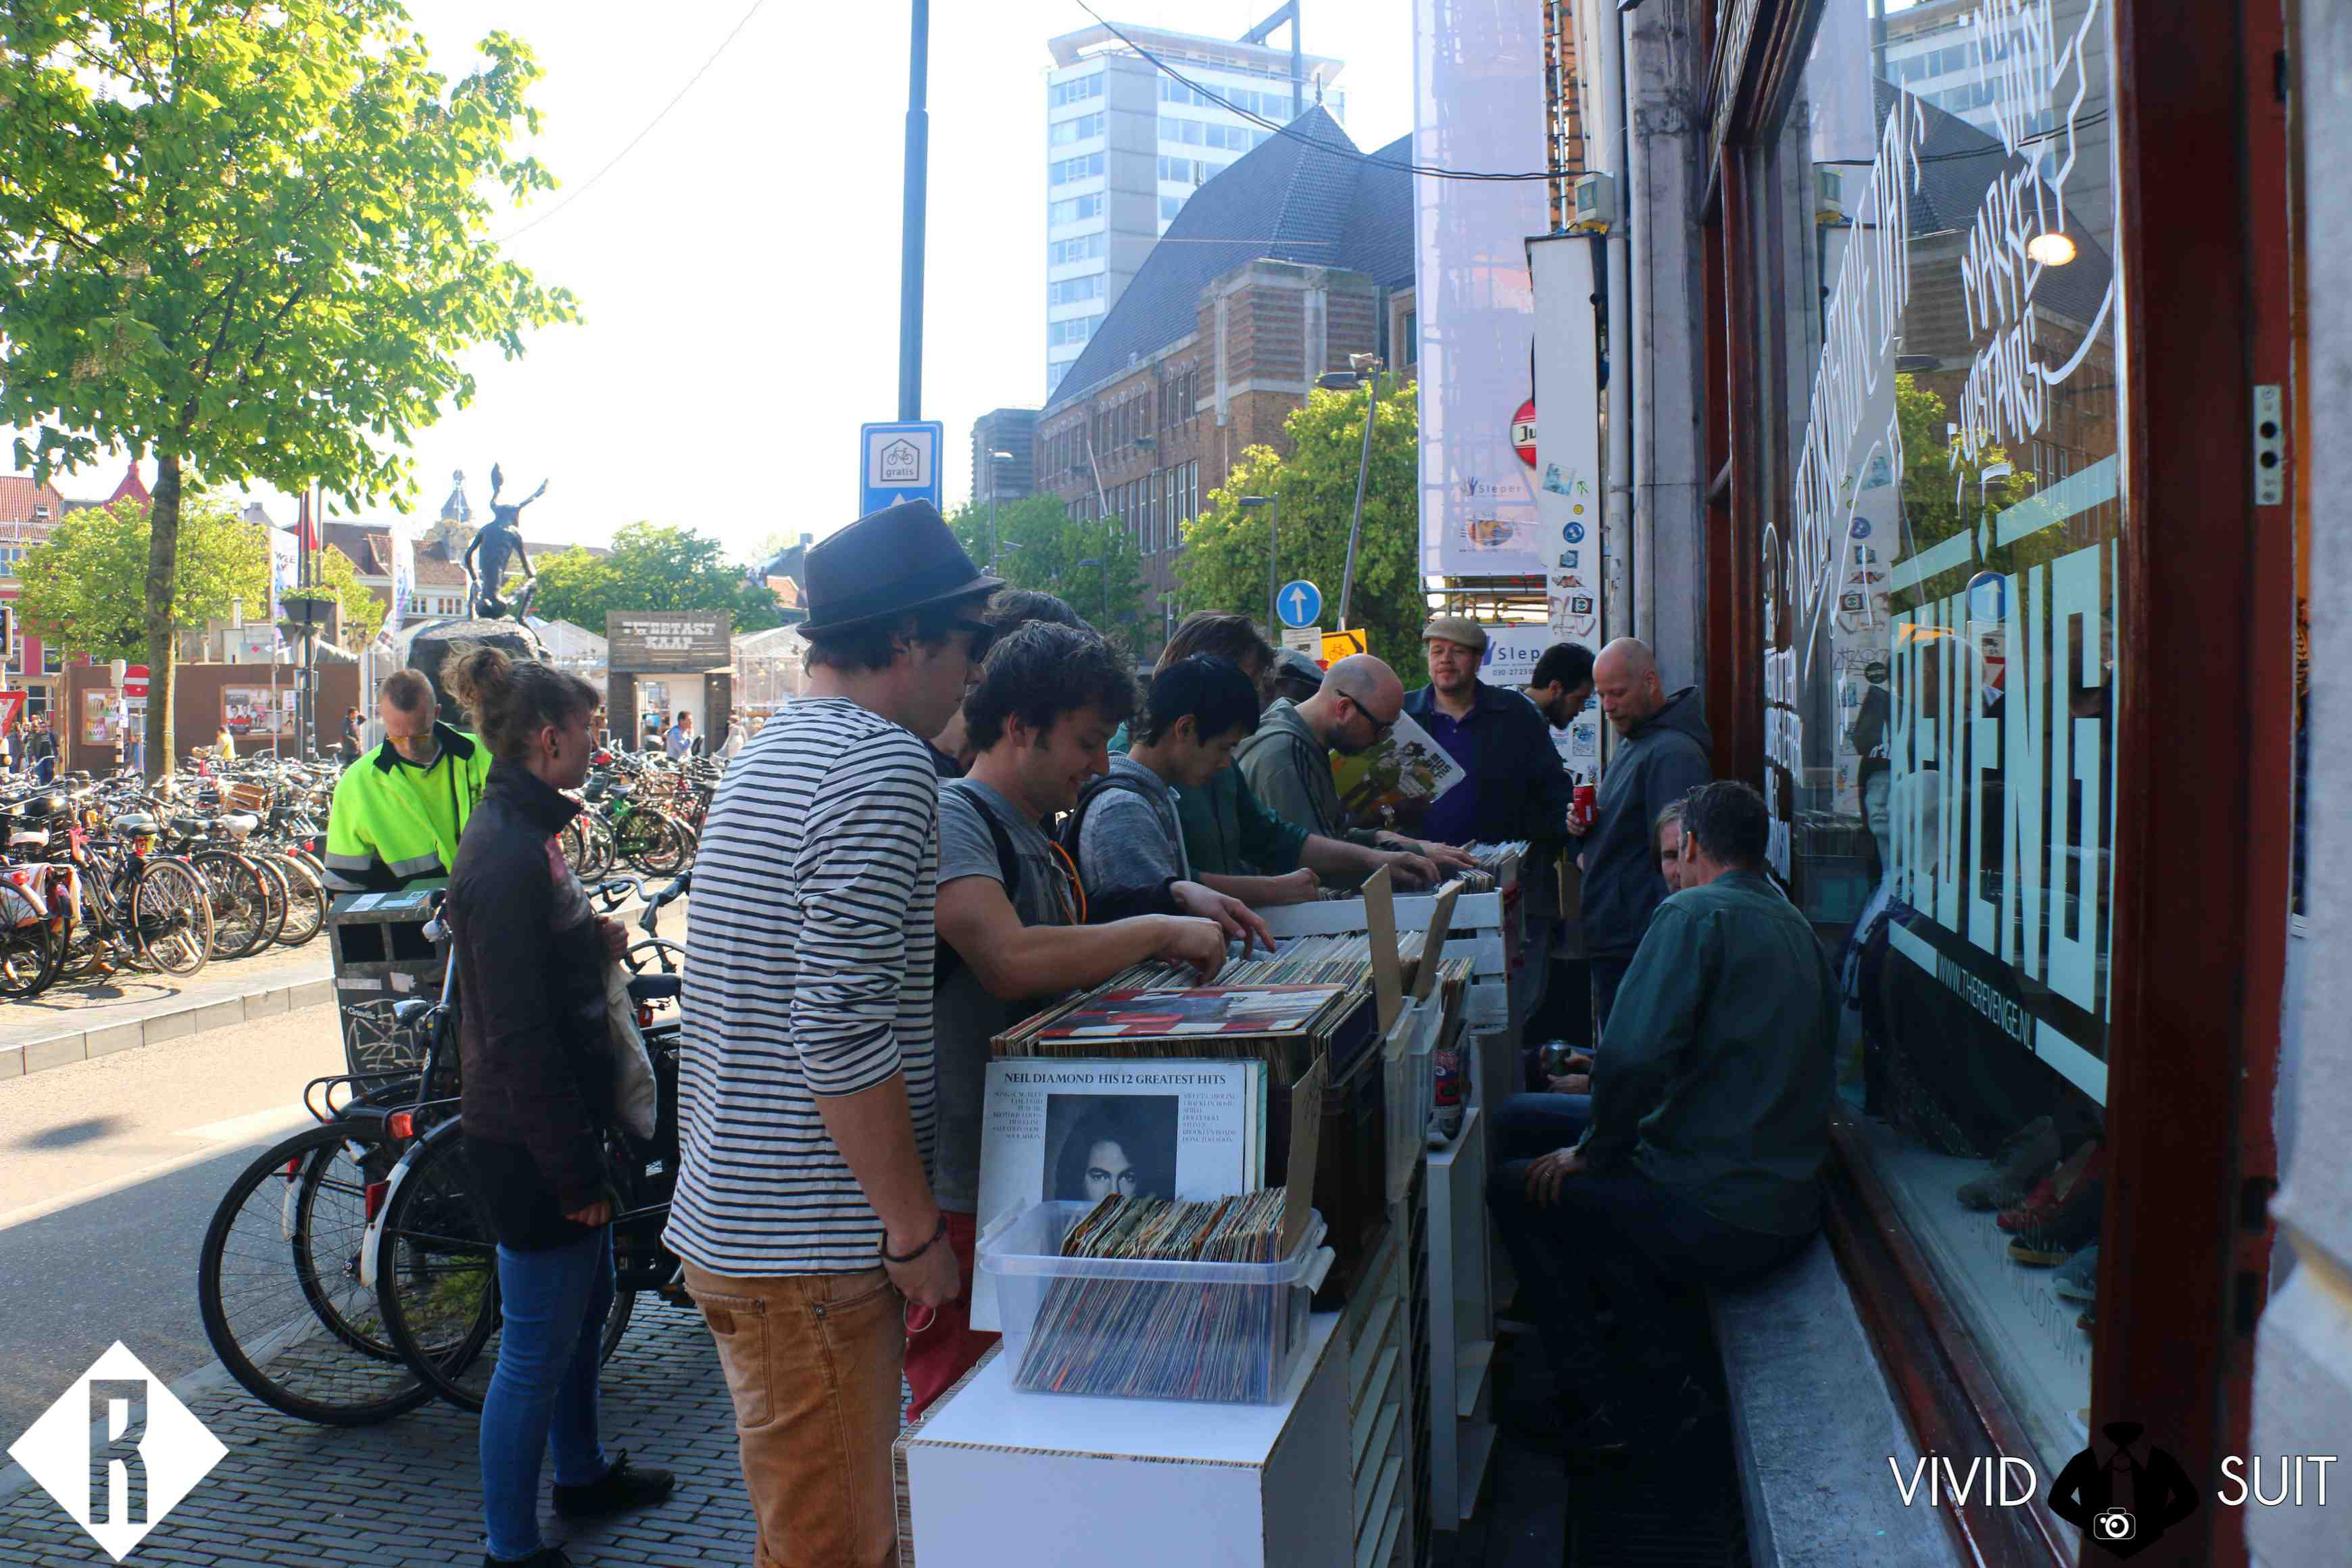 Record Store Day at Revenge, picture by Vivid Suit